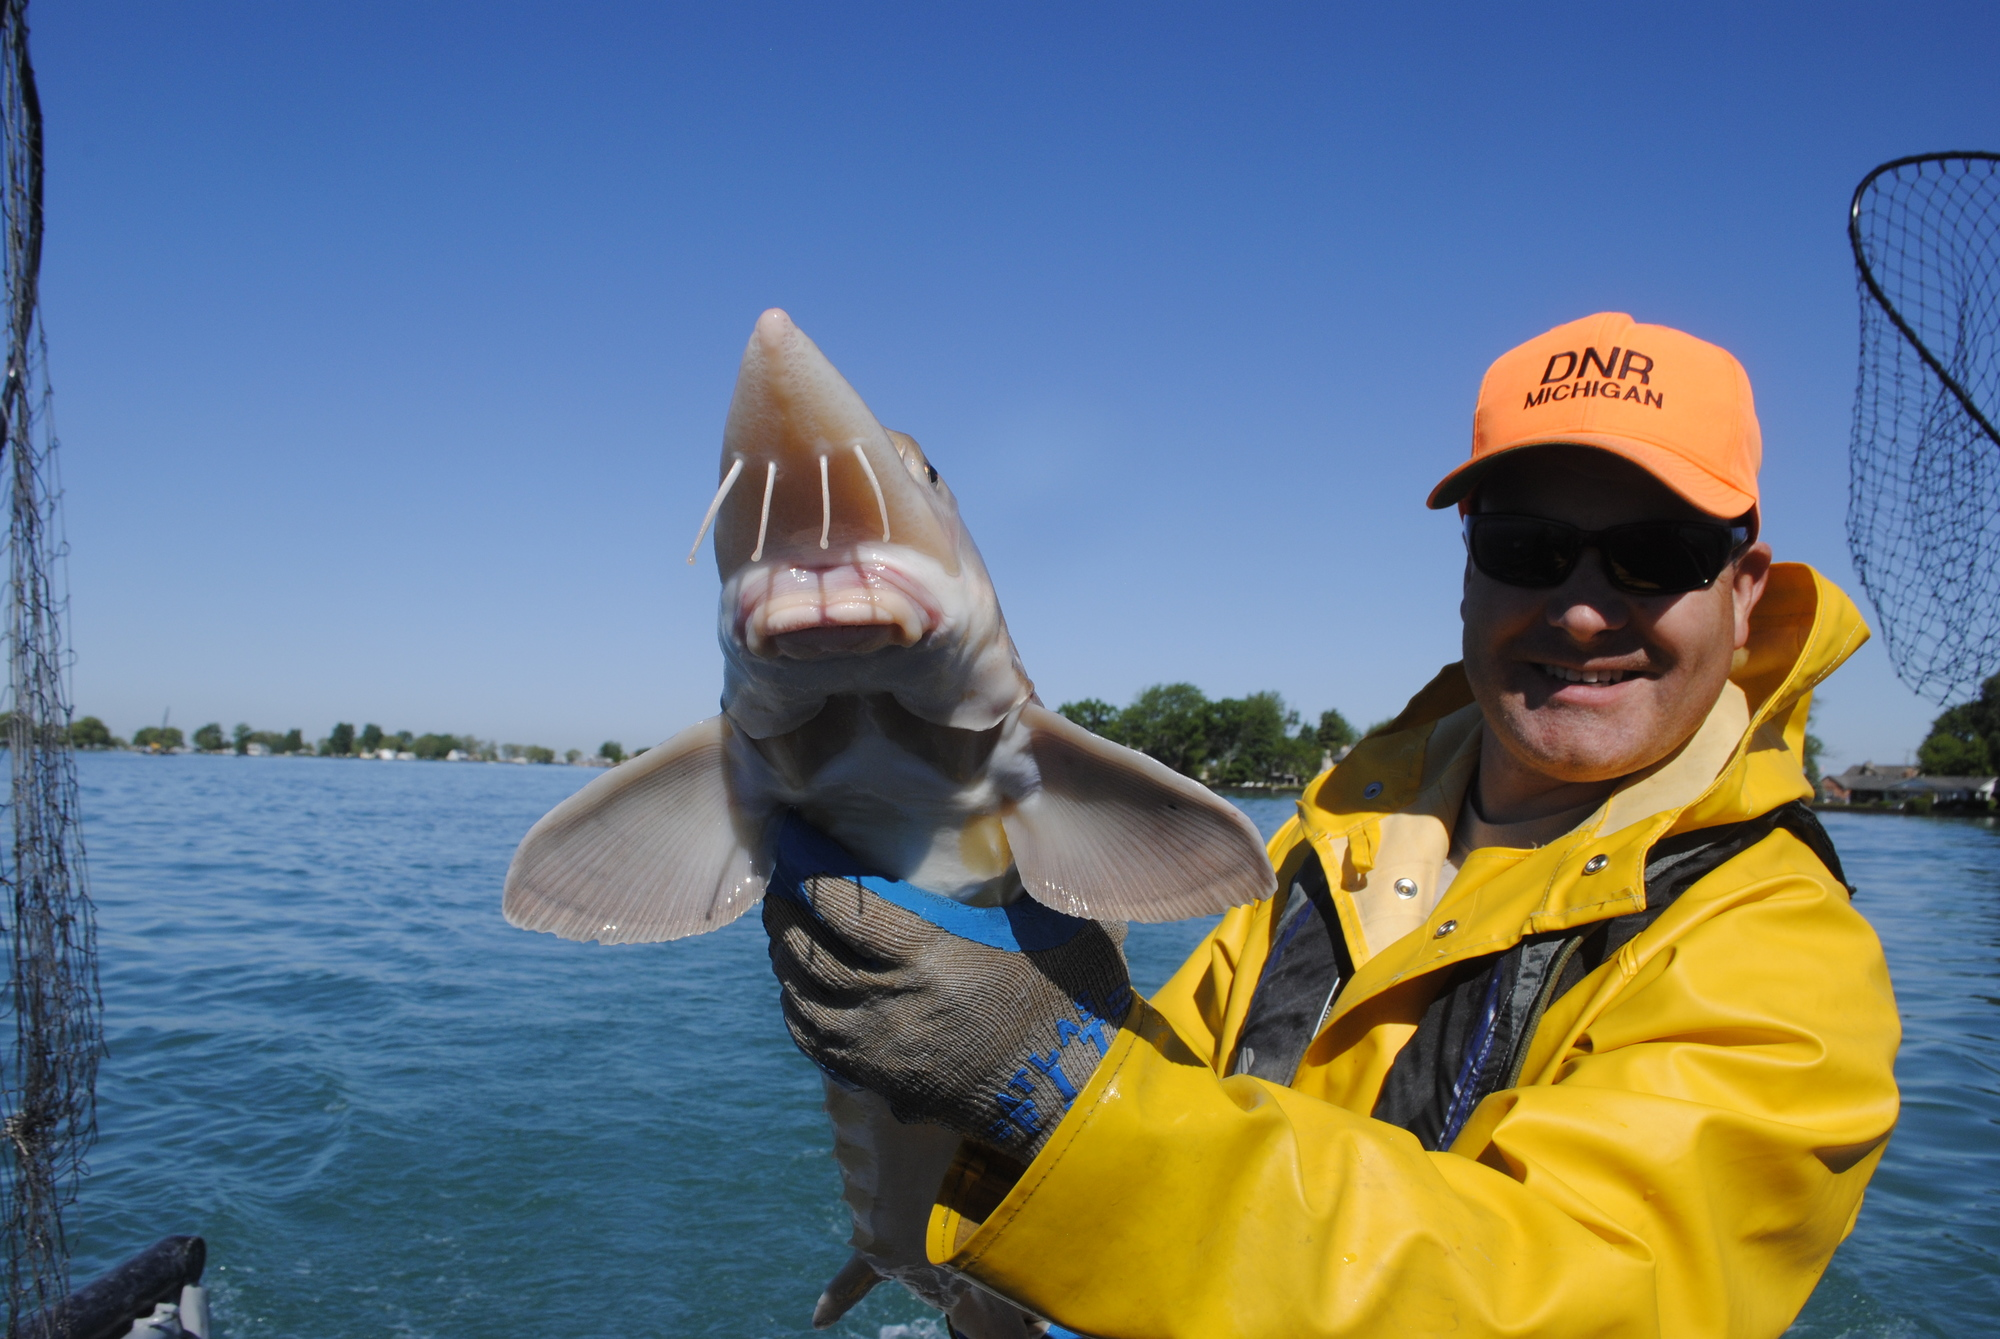 Michigan Department of Natural Resources fisheries assistant Jason Pauken Jason Pauken shows off a St. Clair River sturgeon.